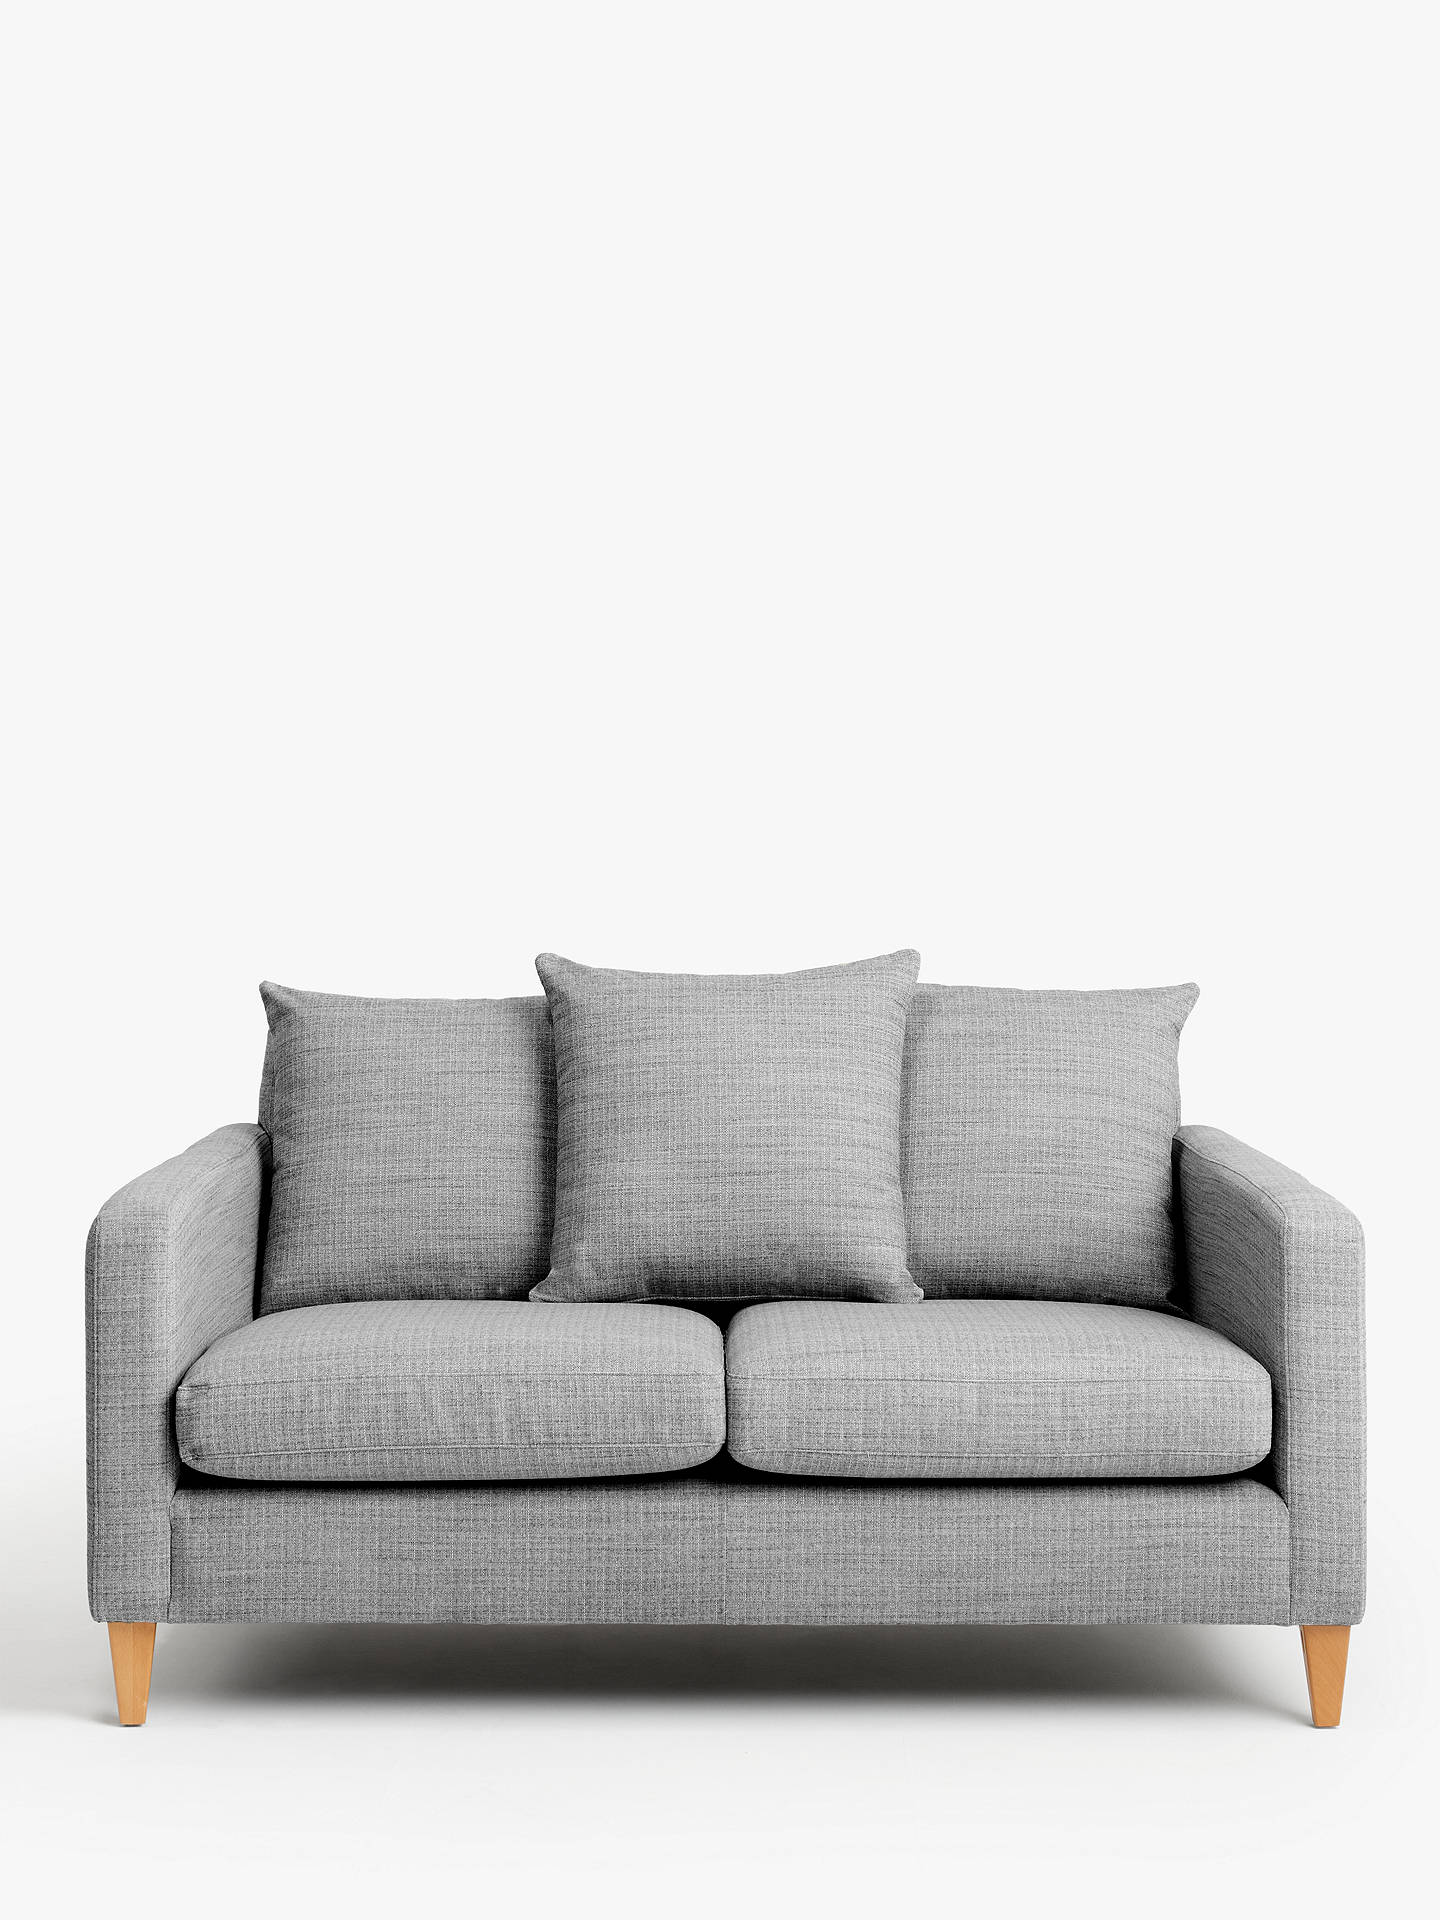 Buy John Lewis & Partners Bailey Scatter Back Small 2 Seater Sofa Online at johnlewis.com